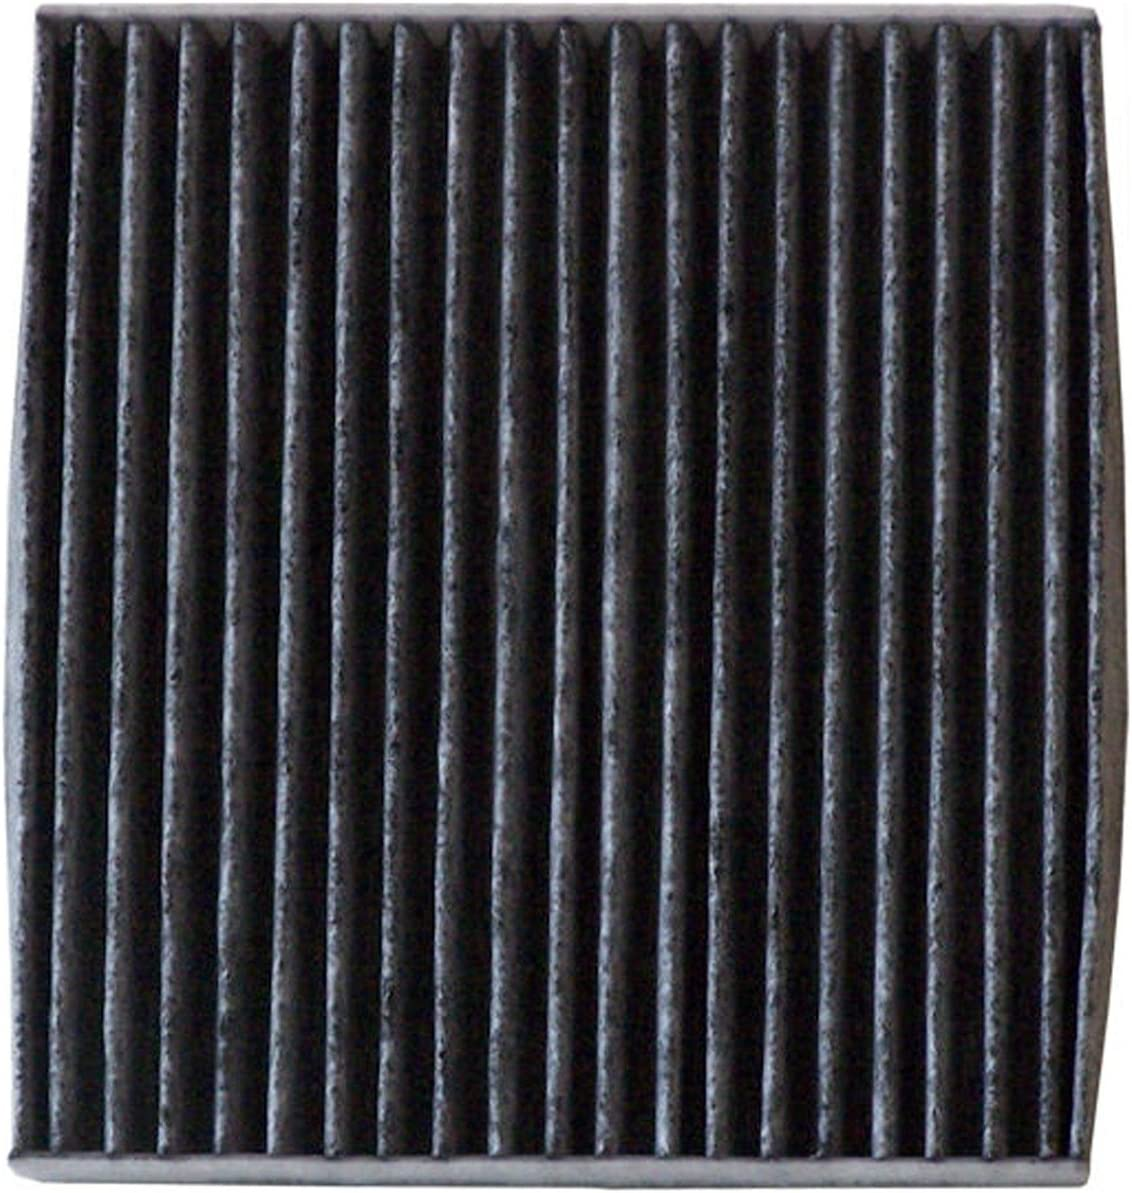 Luber-finer Outstanding CAF1816C Sales for sale Cabin Filter Air